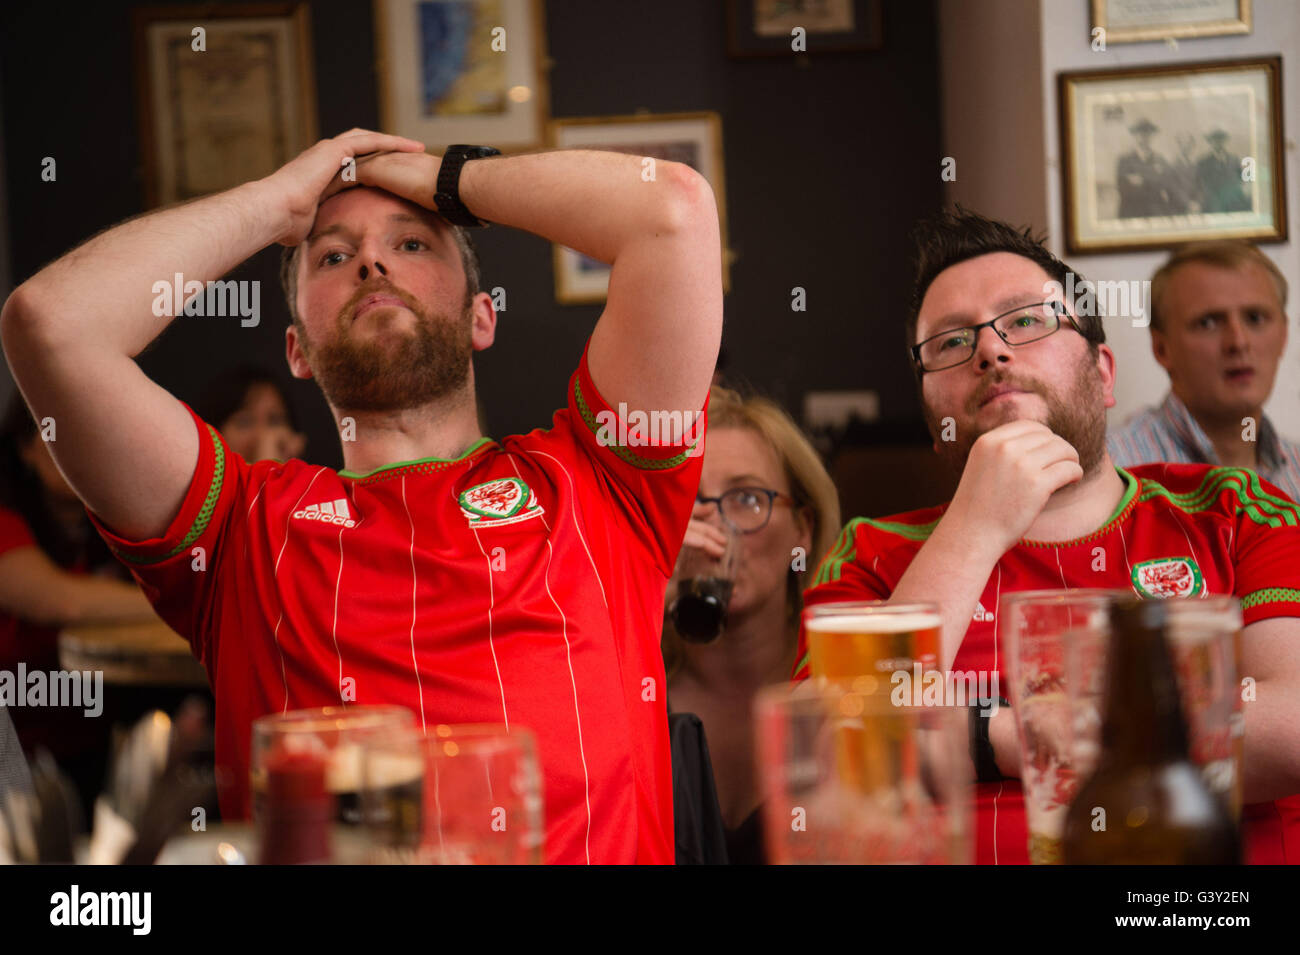 aberystwyth-wales-uk-16th-june-2016-euro-2016-disappointed-welsh-football-G3Y2EN.jpg